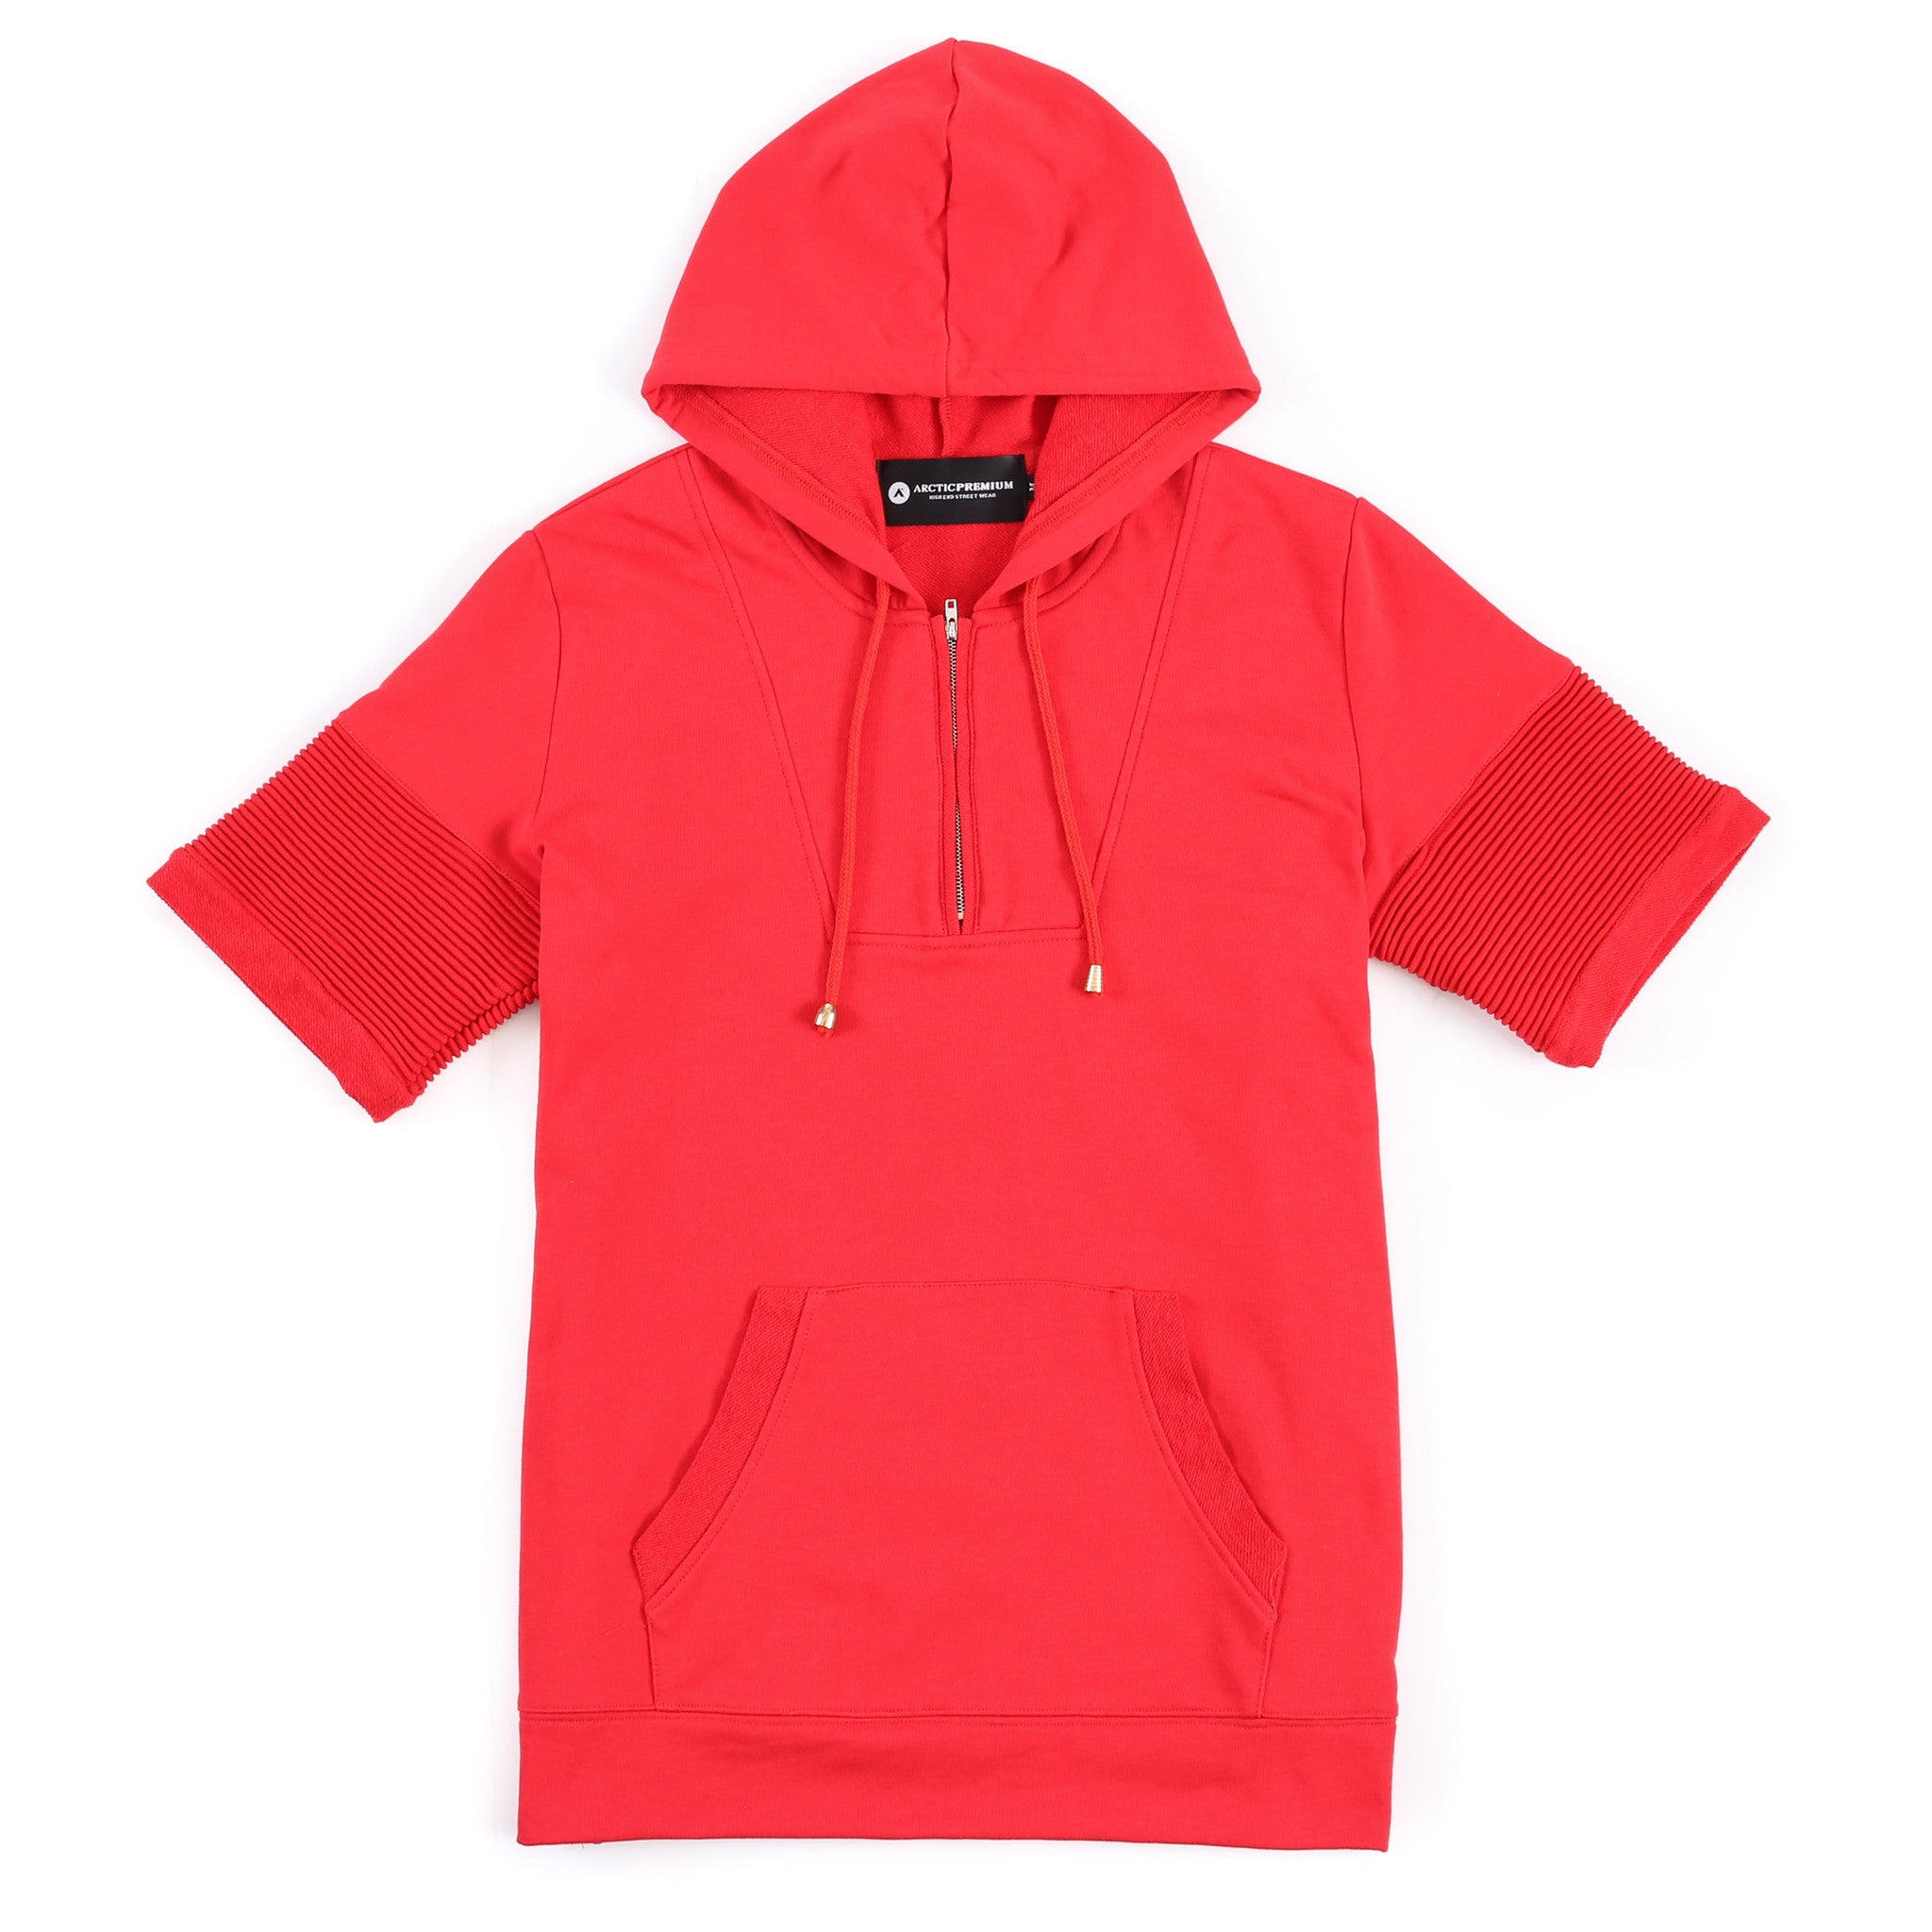 Bryson S/S Hoody (Red)